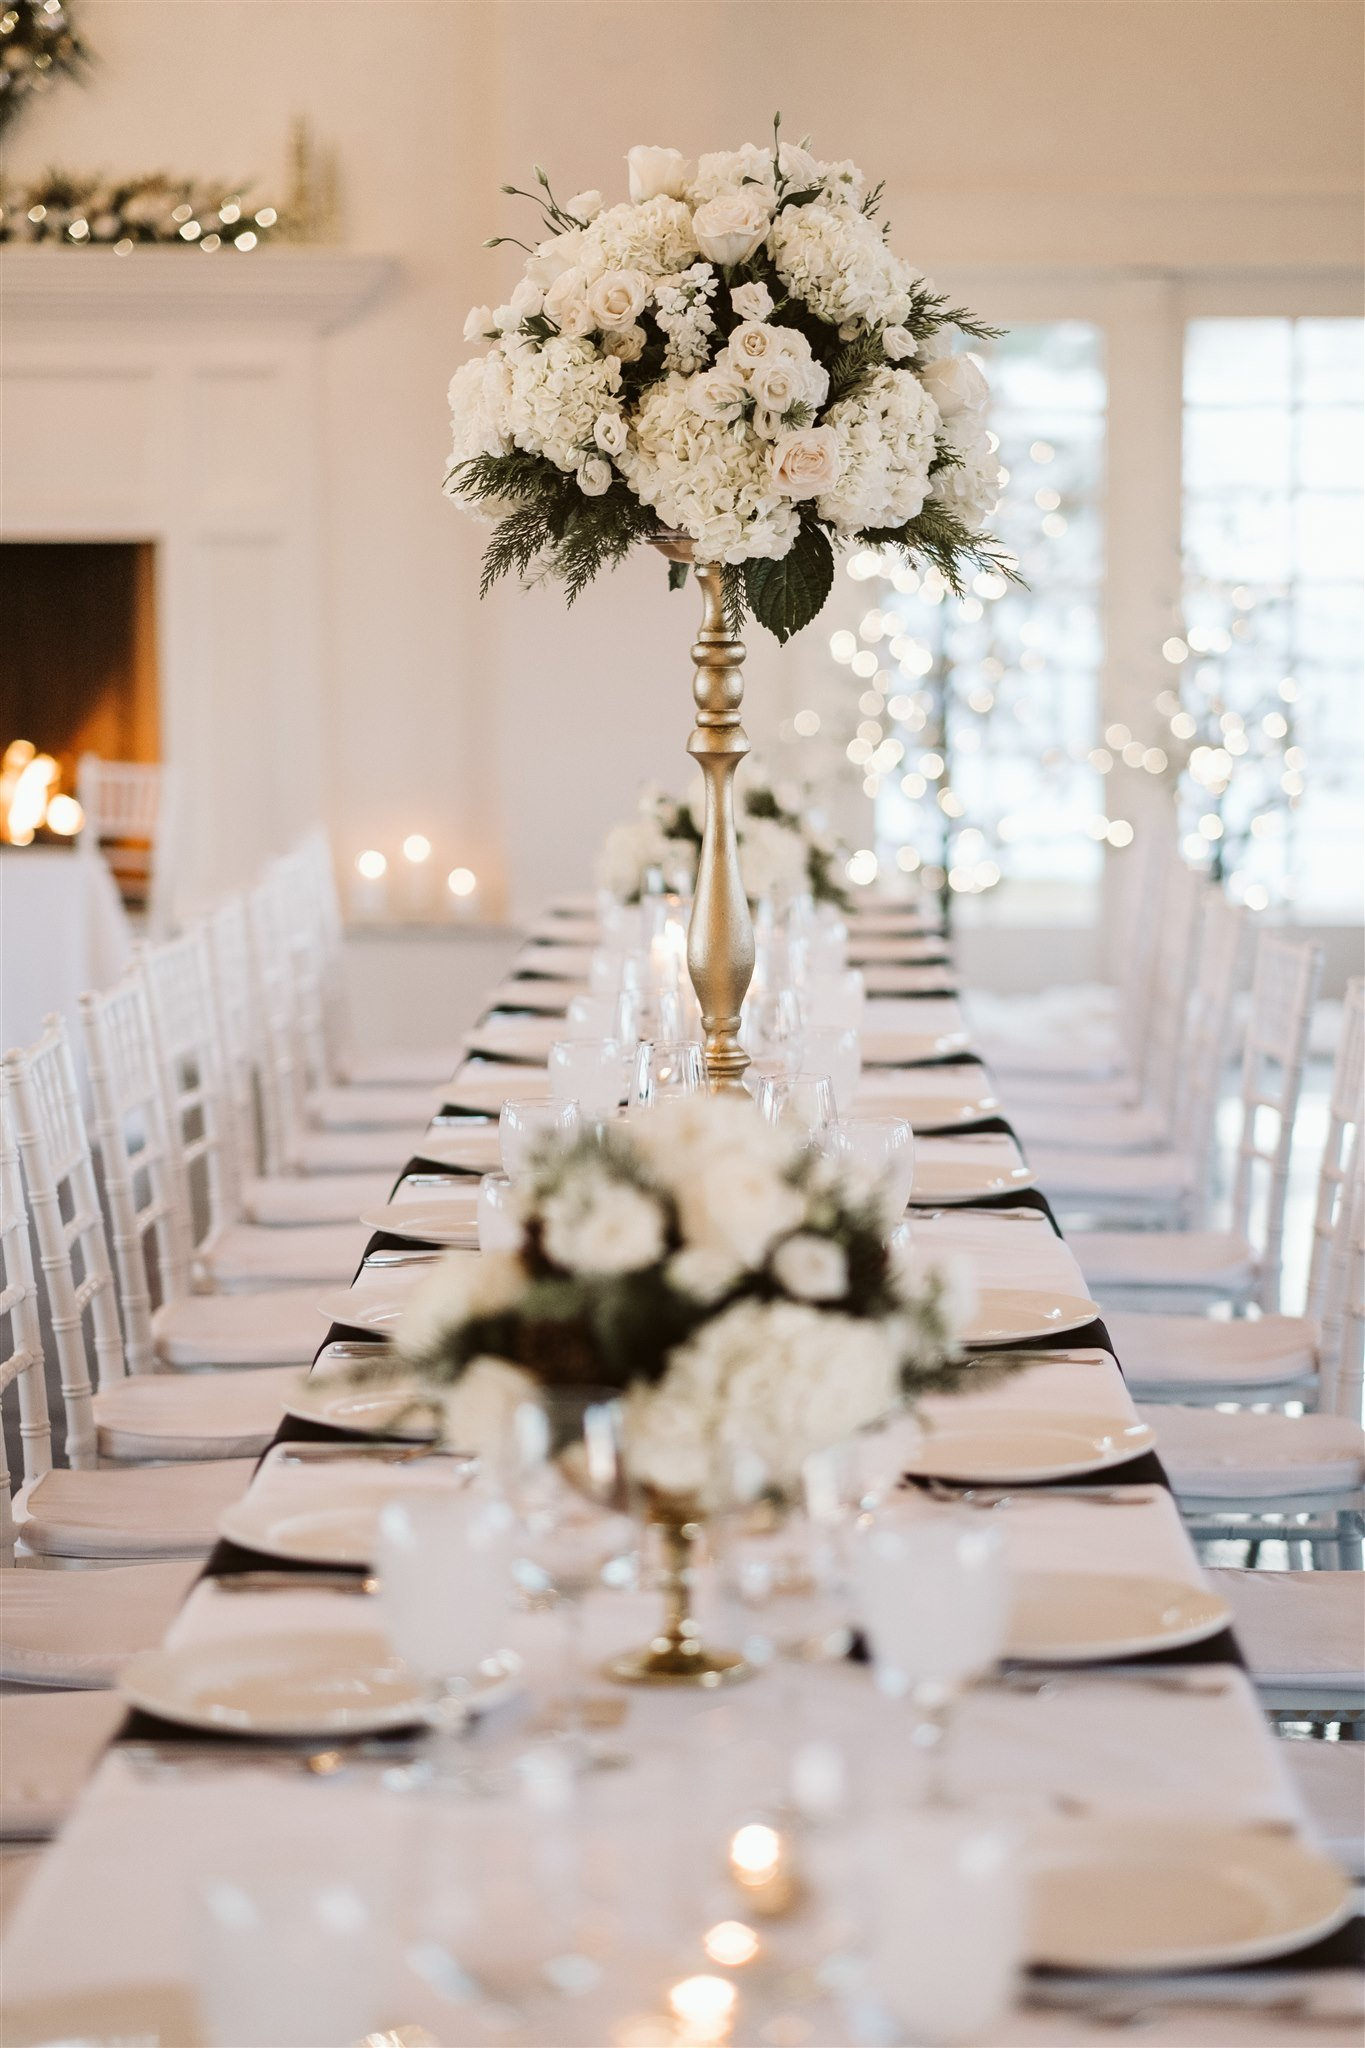 Cozy winter wedding reception tables